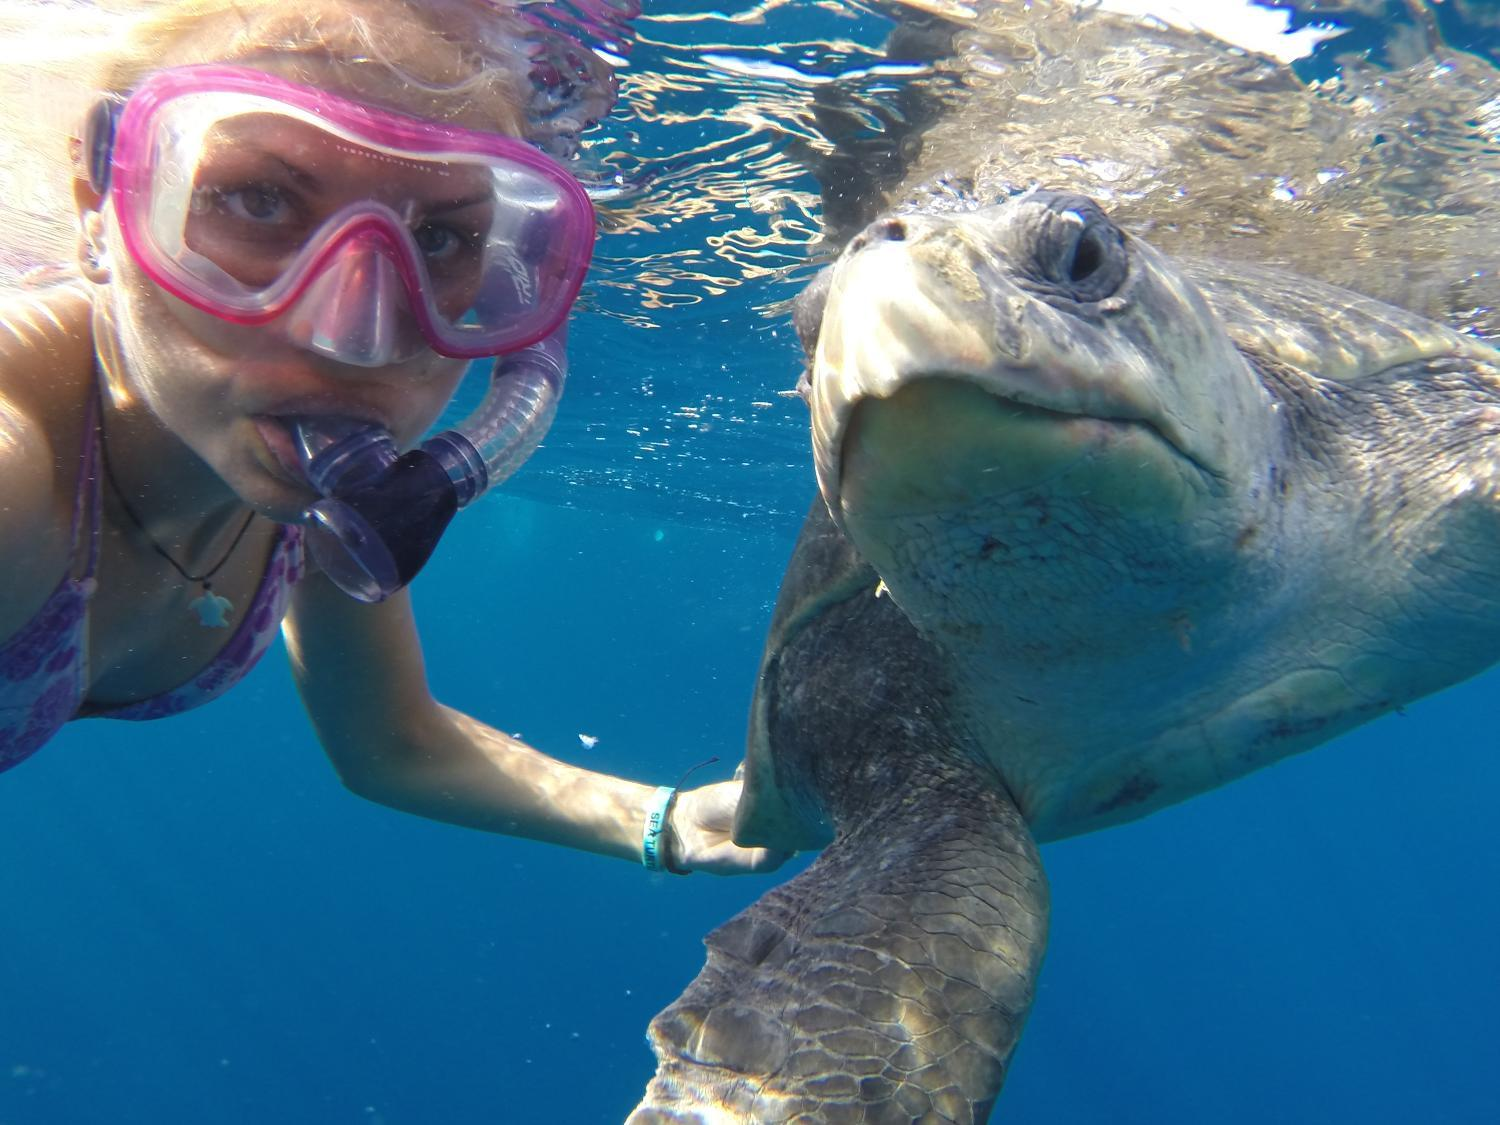 woman and turtle underwater